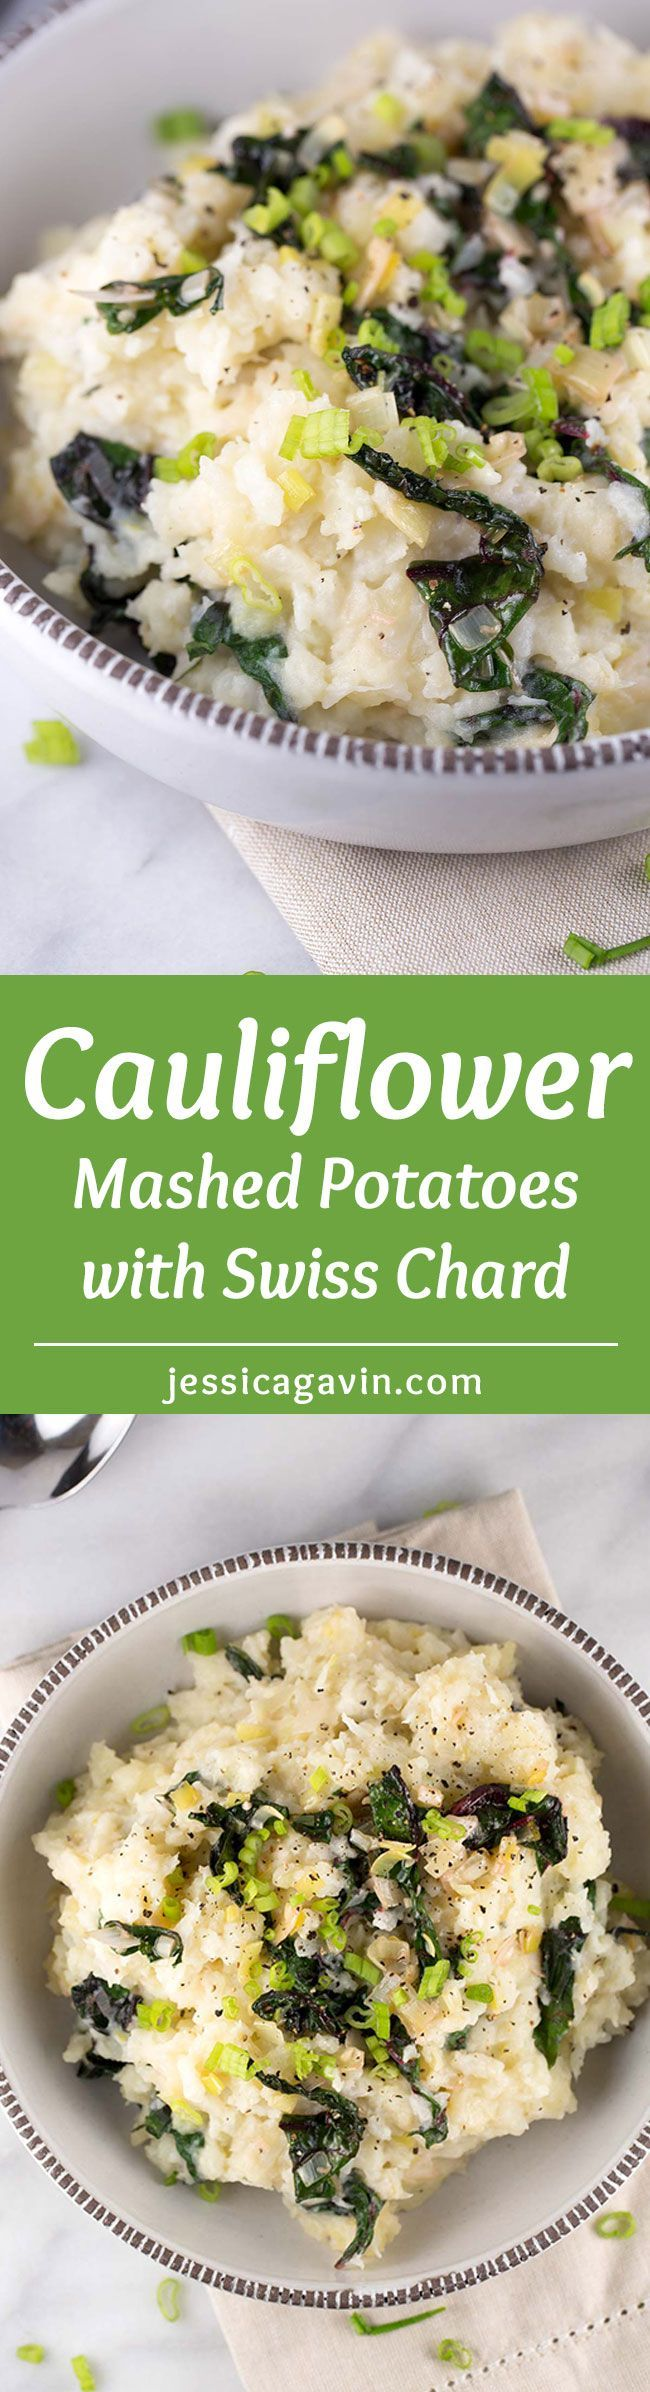 Cauliflower Mashed Potatoes with Swiss Chard - This recipe is packed with healthy vegetables while creamy potatoes are infused with garlic, leeks and fresh chard | jessicagavin.com